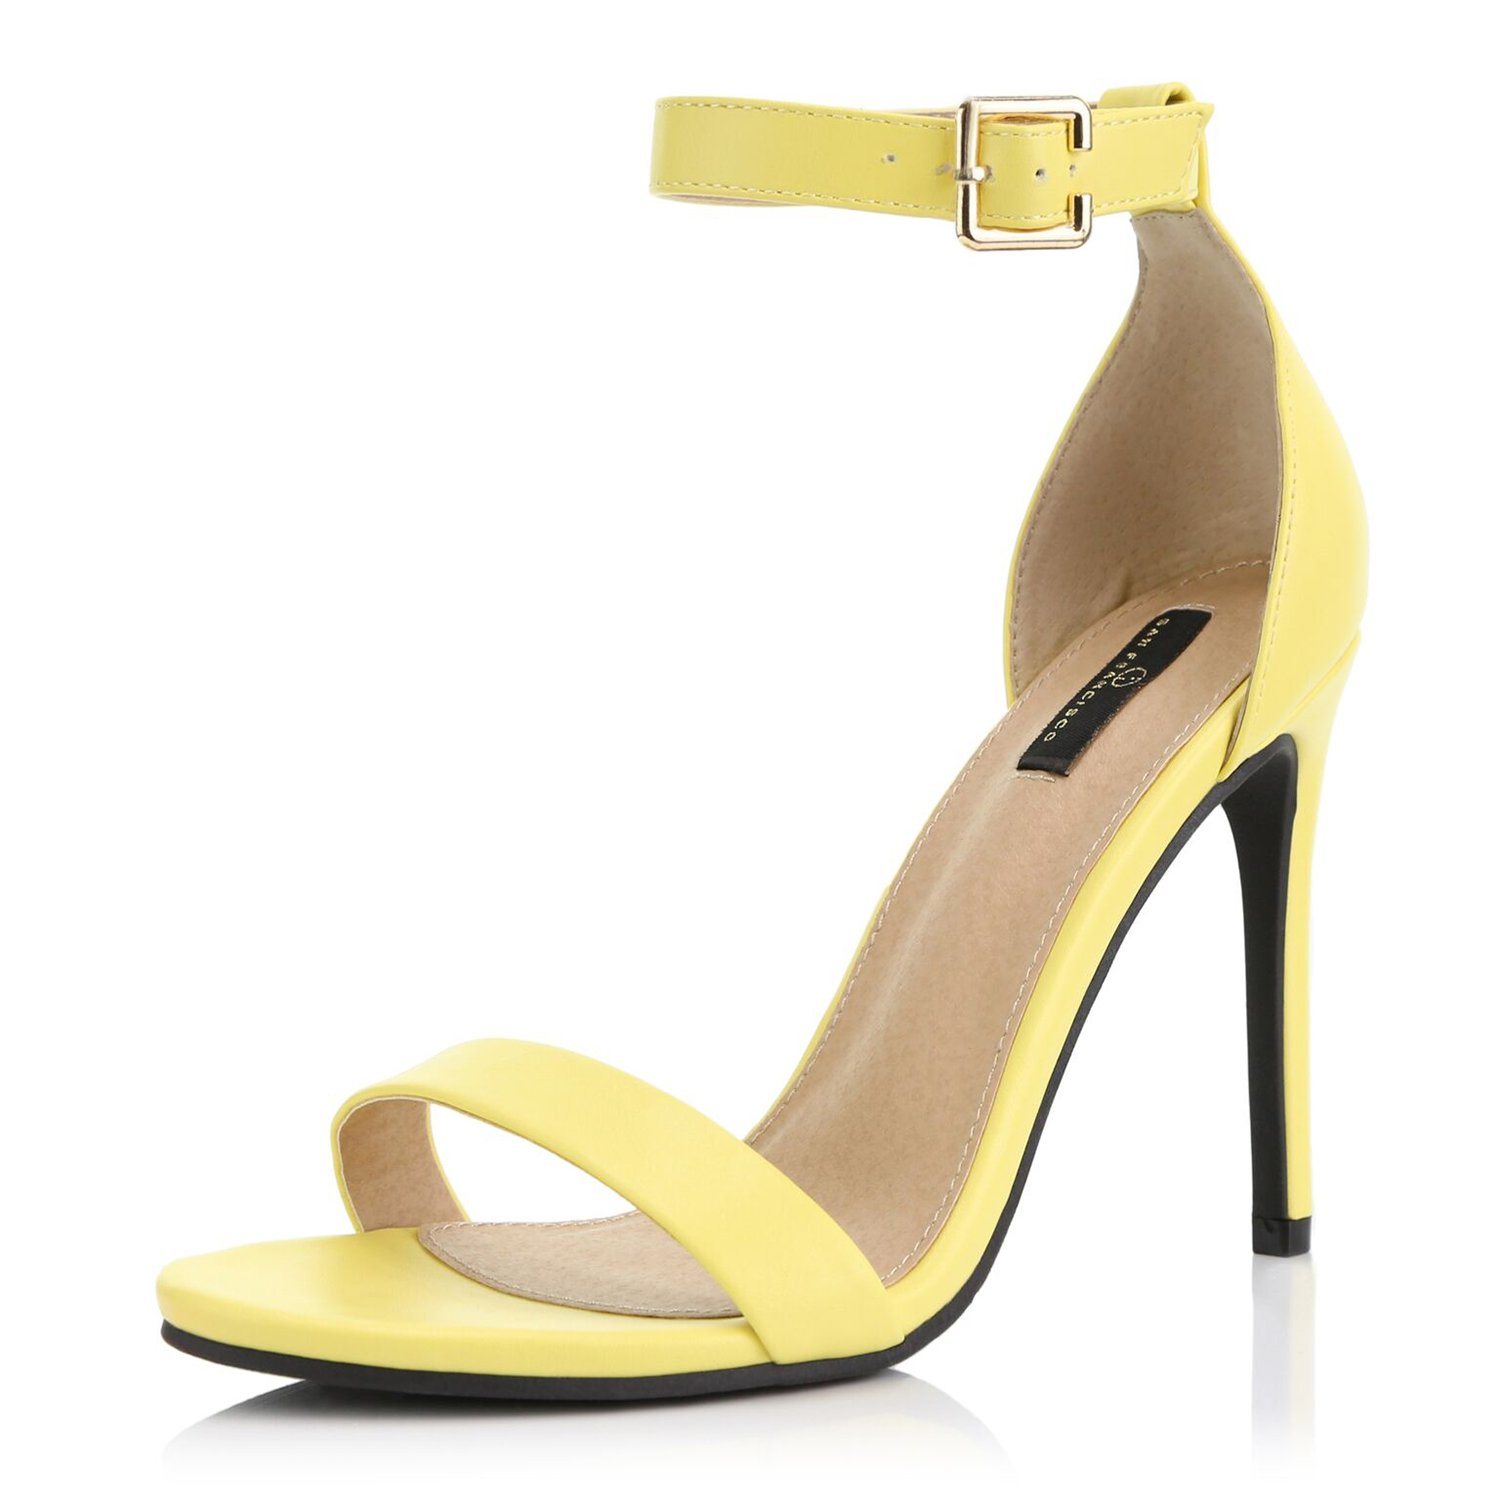 DailyShoes Women's Open Toe Ankle Buckle Strap Platform Casual Pump Heel Sandal Shoes, Yellow PU, 8 B(M) US